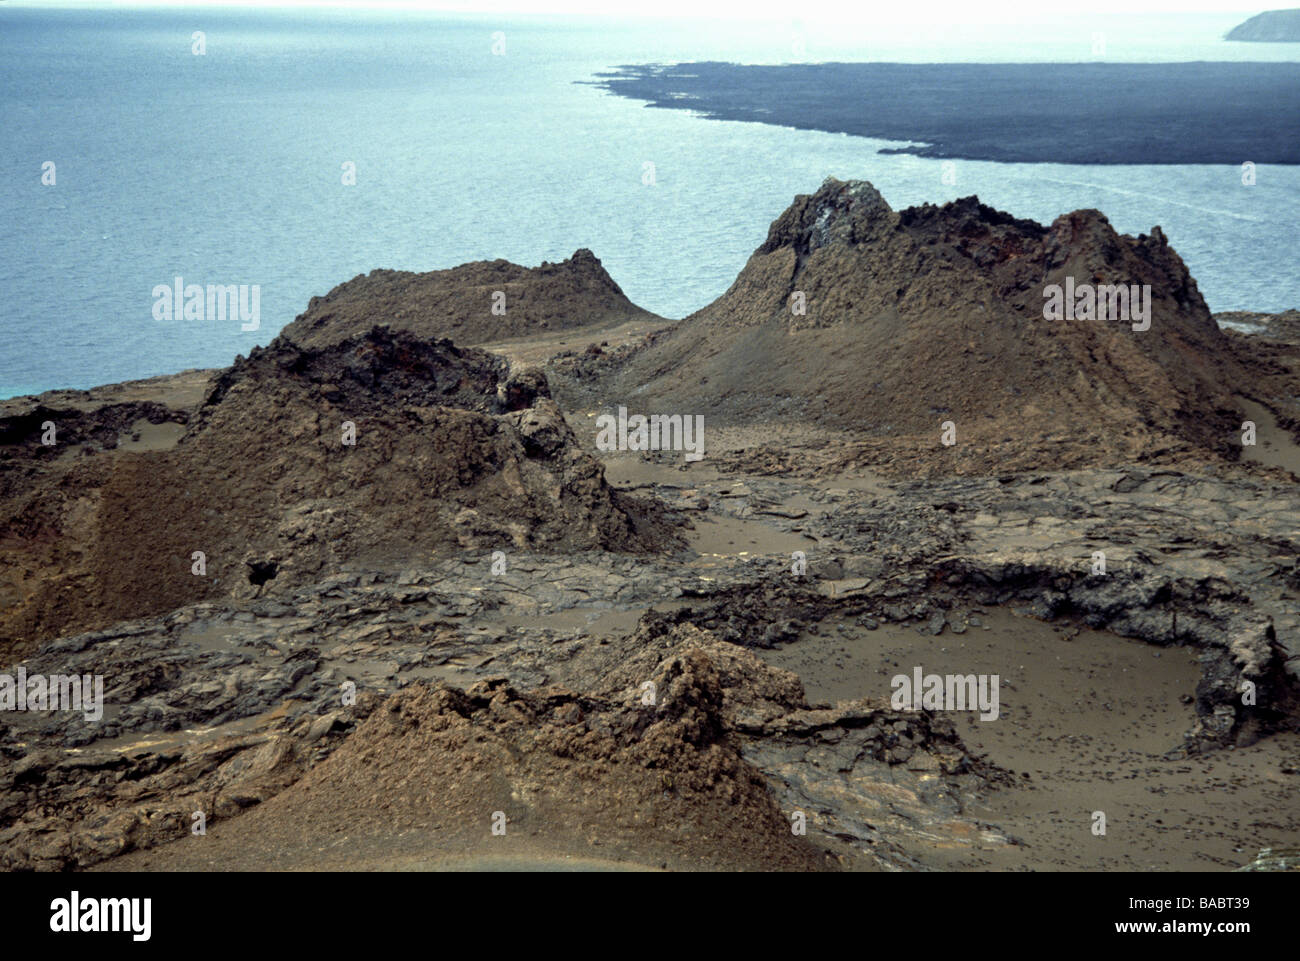 Galapagos Islands. Splatter cones on Bartholomew Island. Bartholomew is estimated to be 1 million years old. - Stock Image